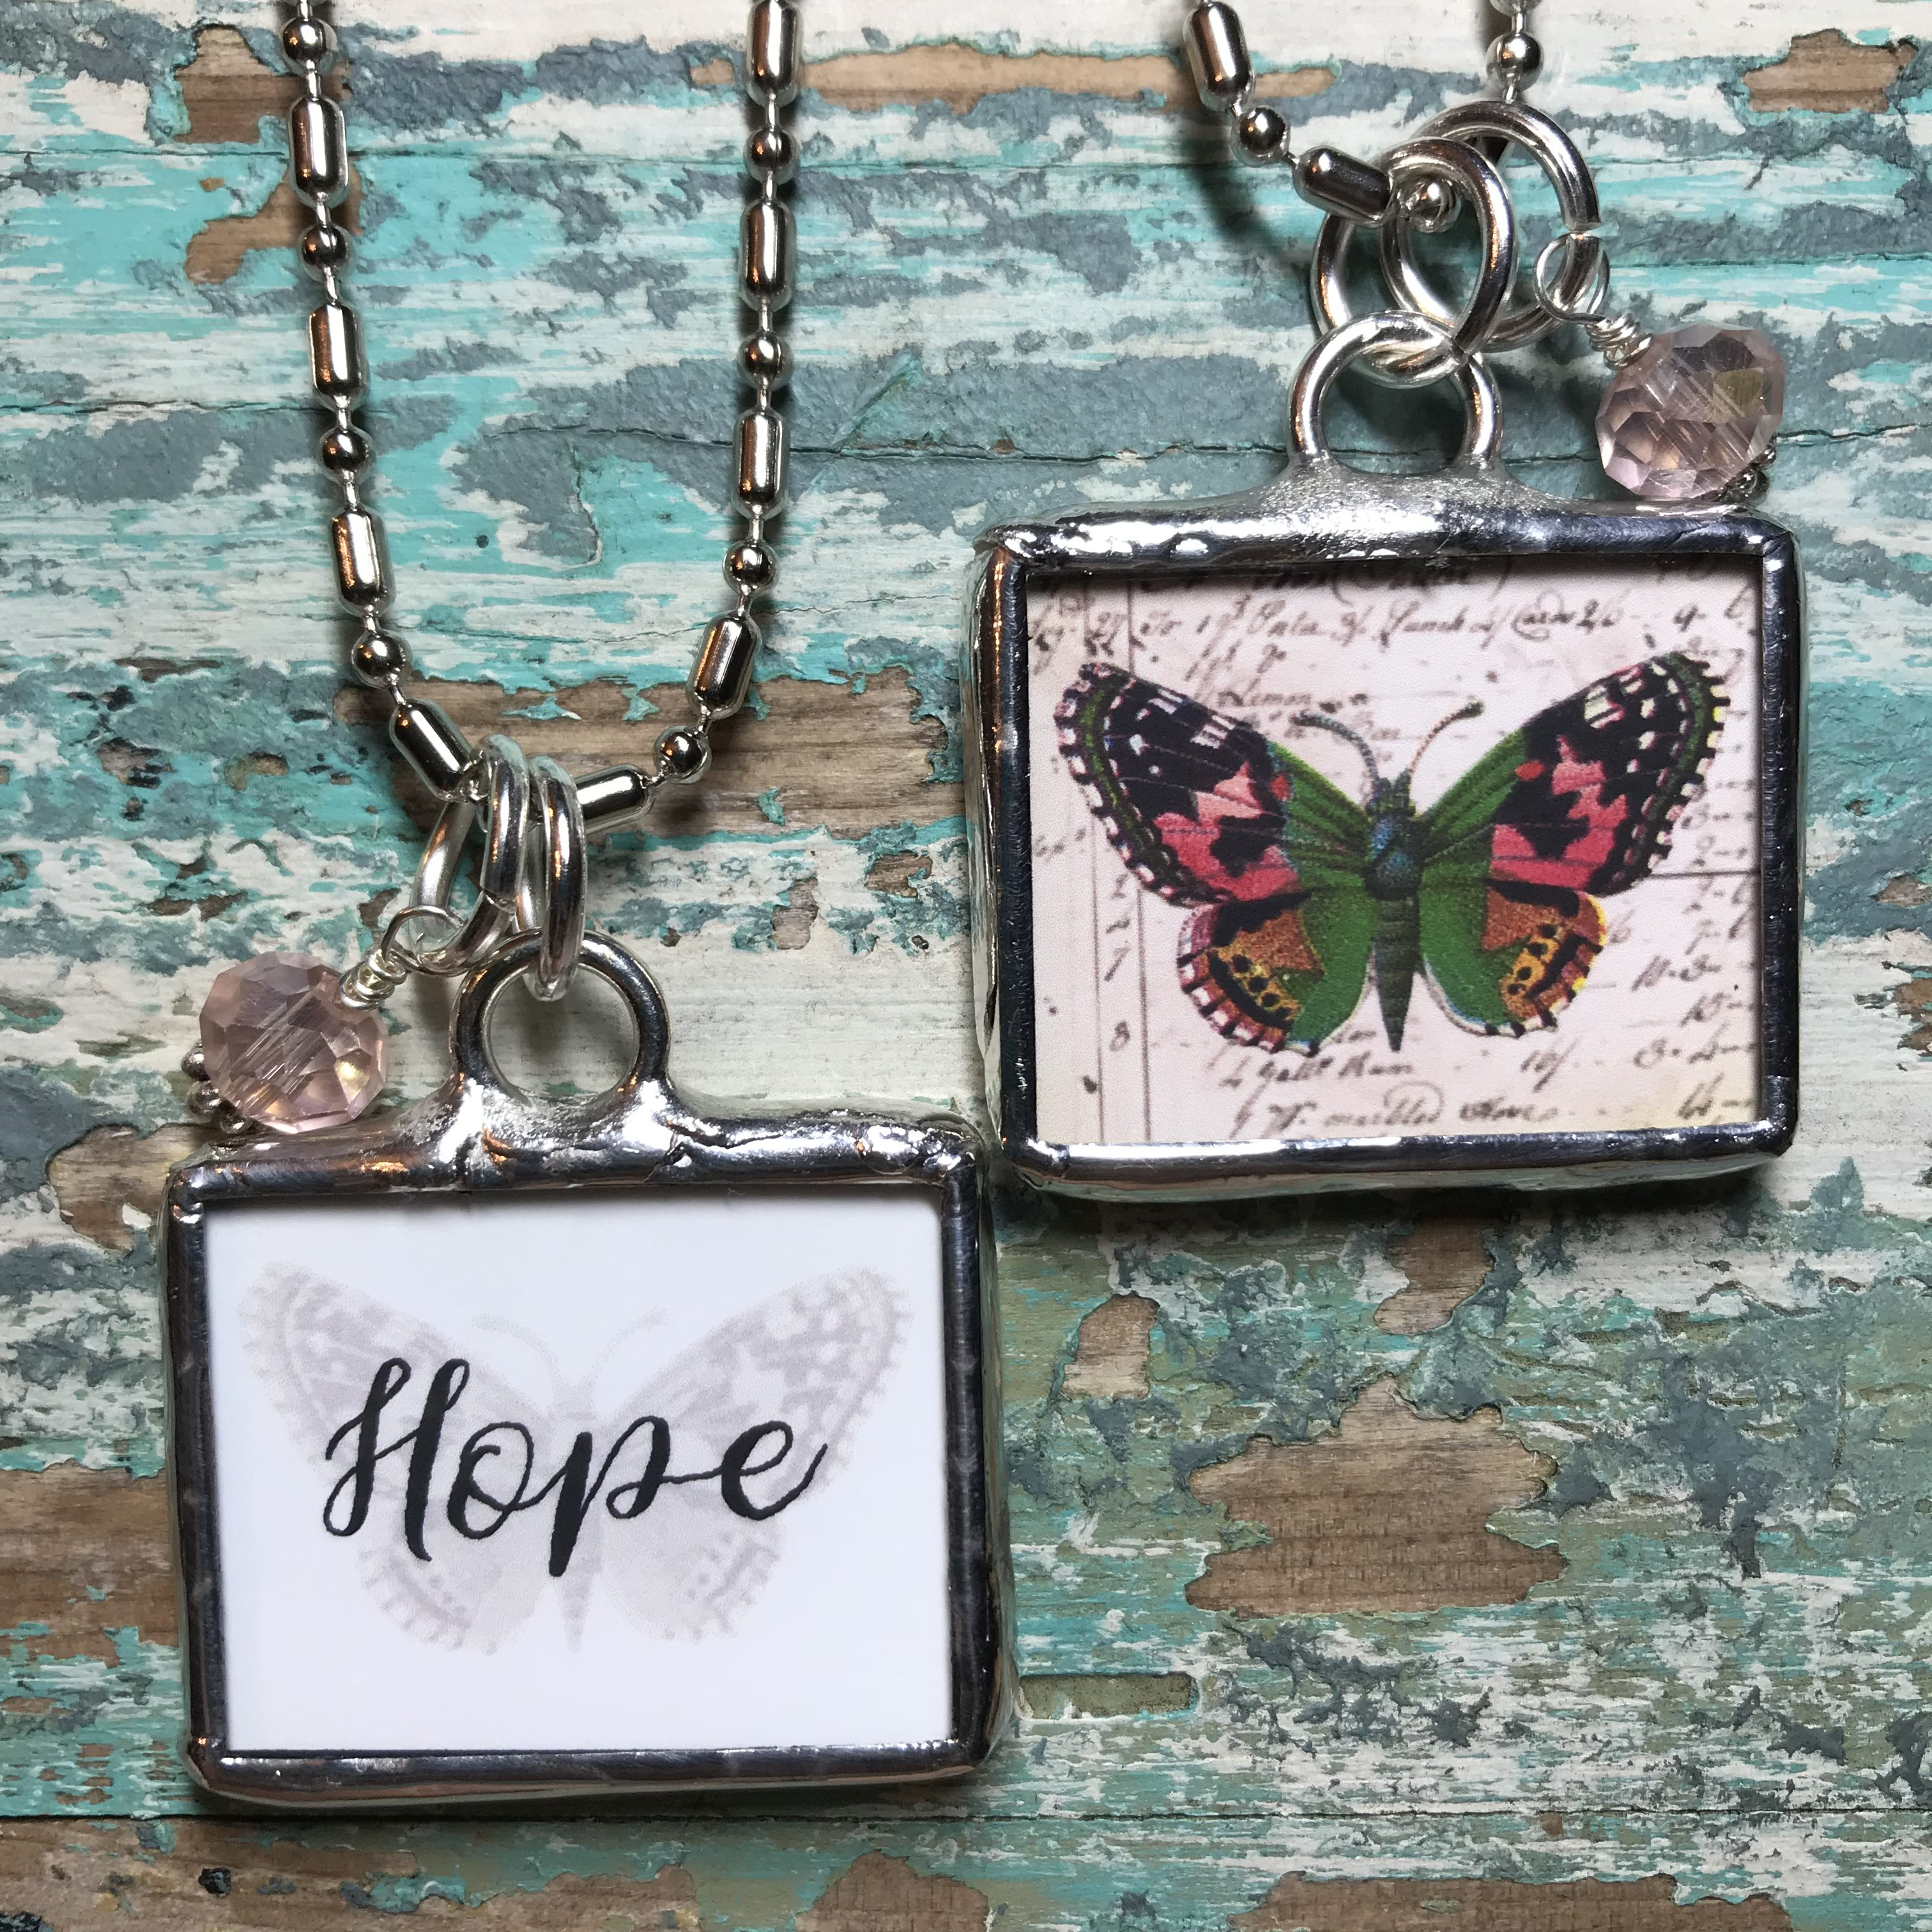 hope, cure, hope for a cure, fight Batten, there is always hope, faith